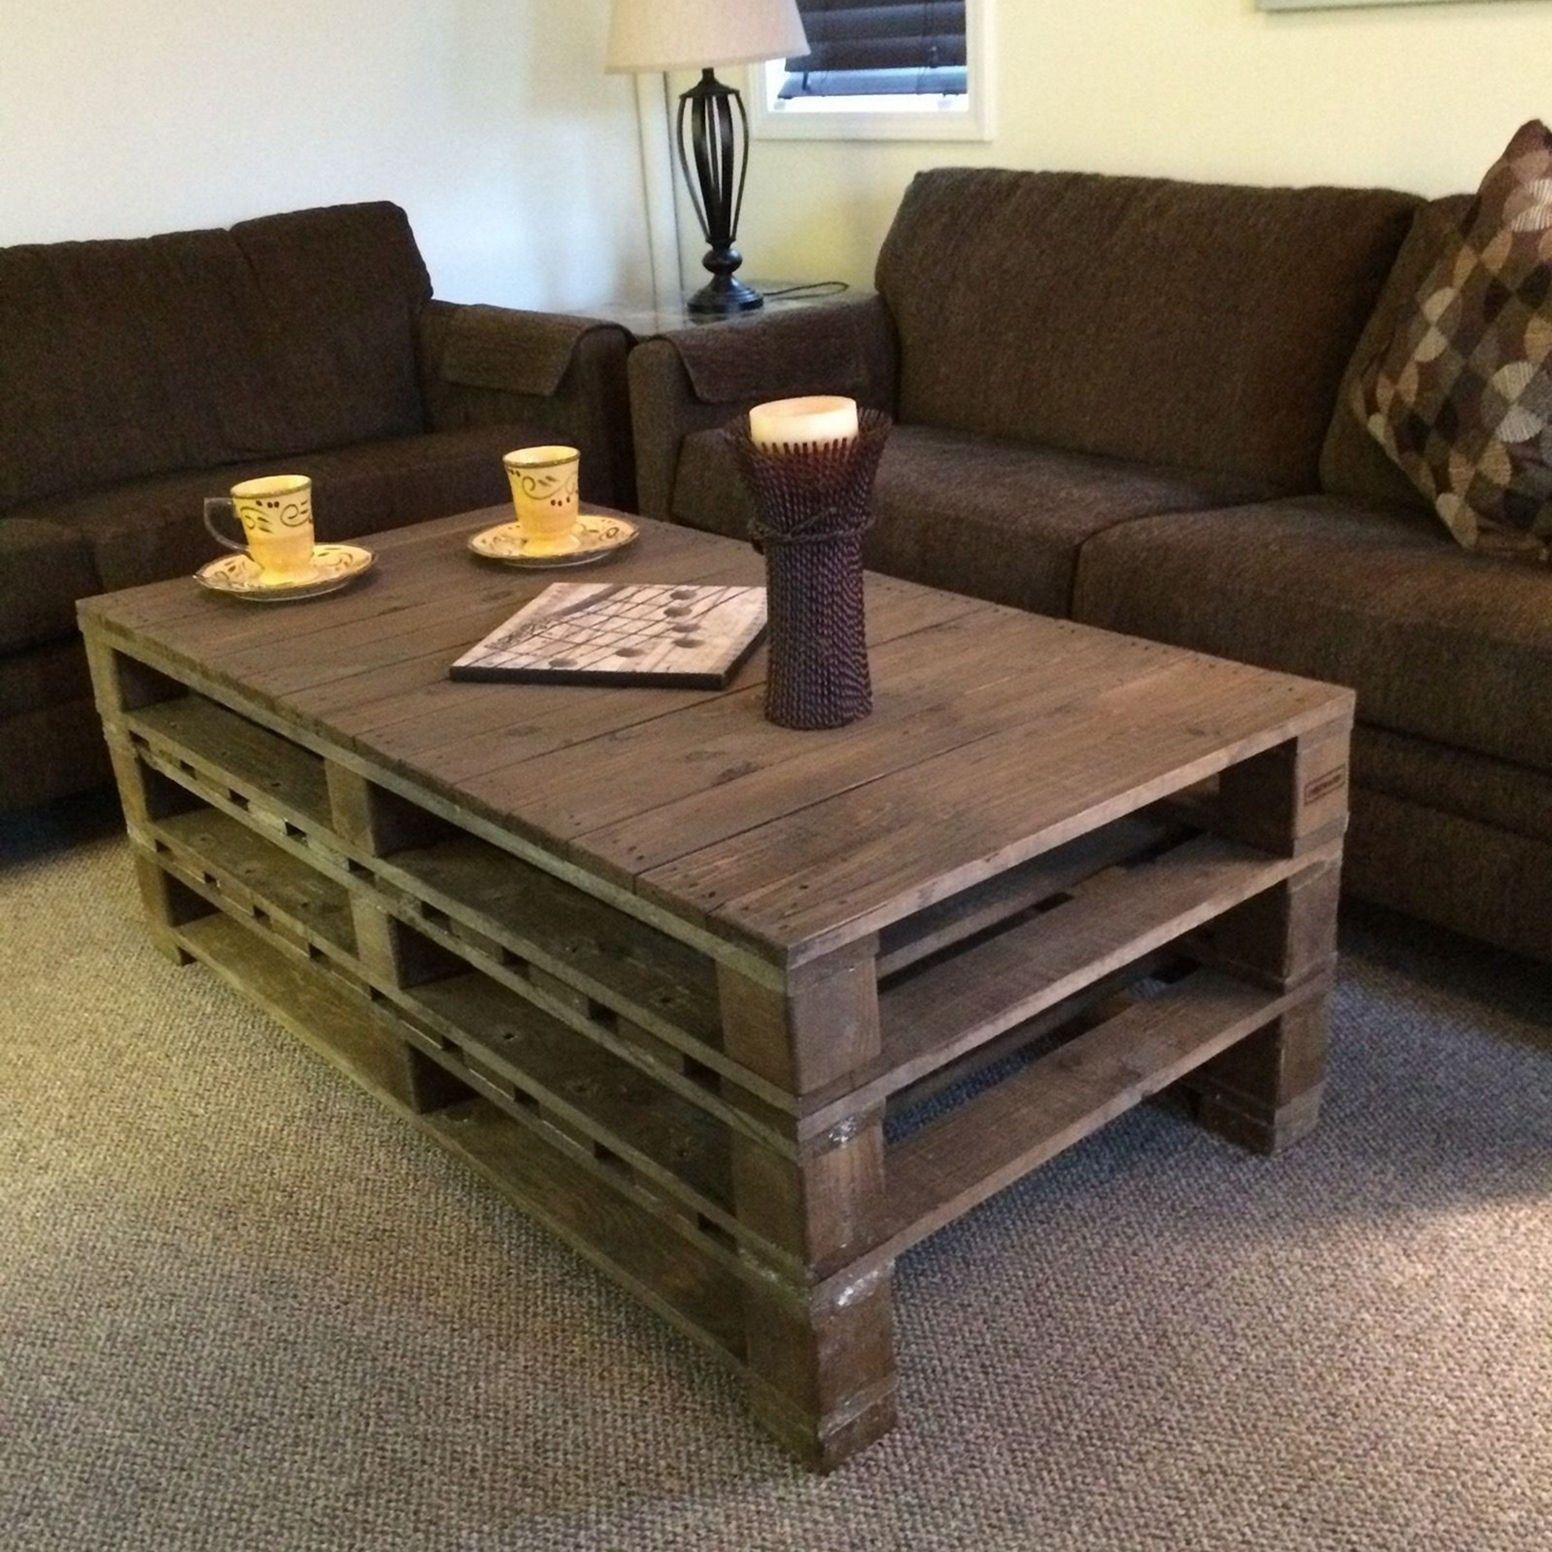 13 Awesome Diy Coffee Tables Designs